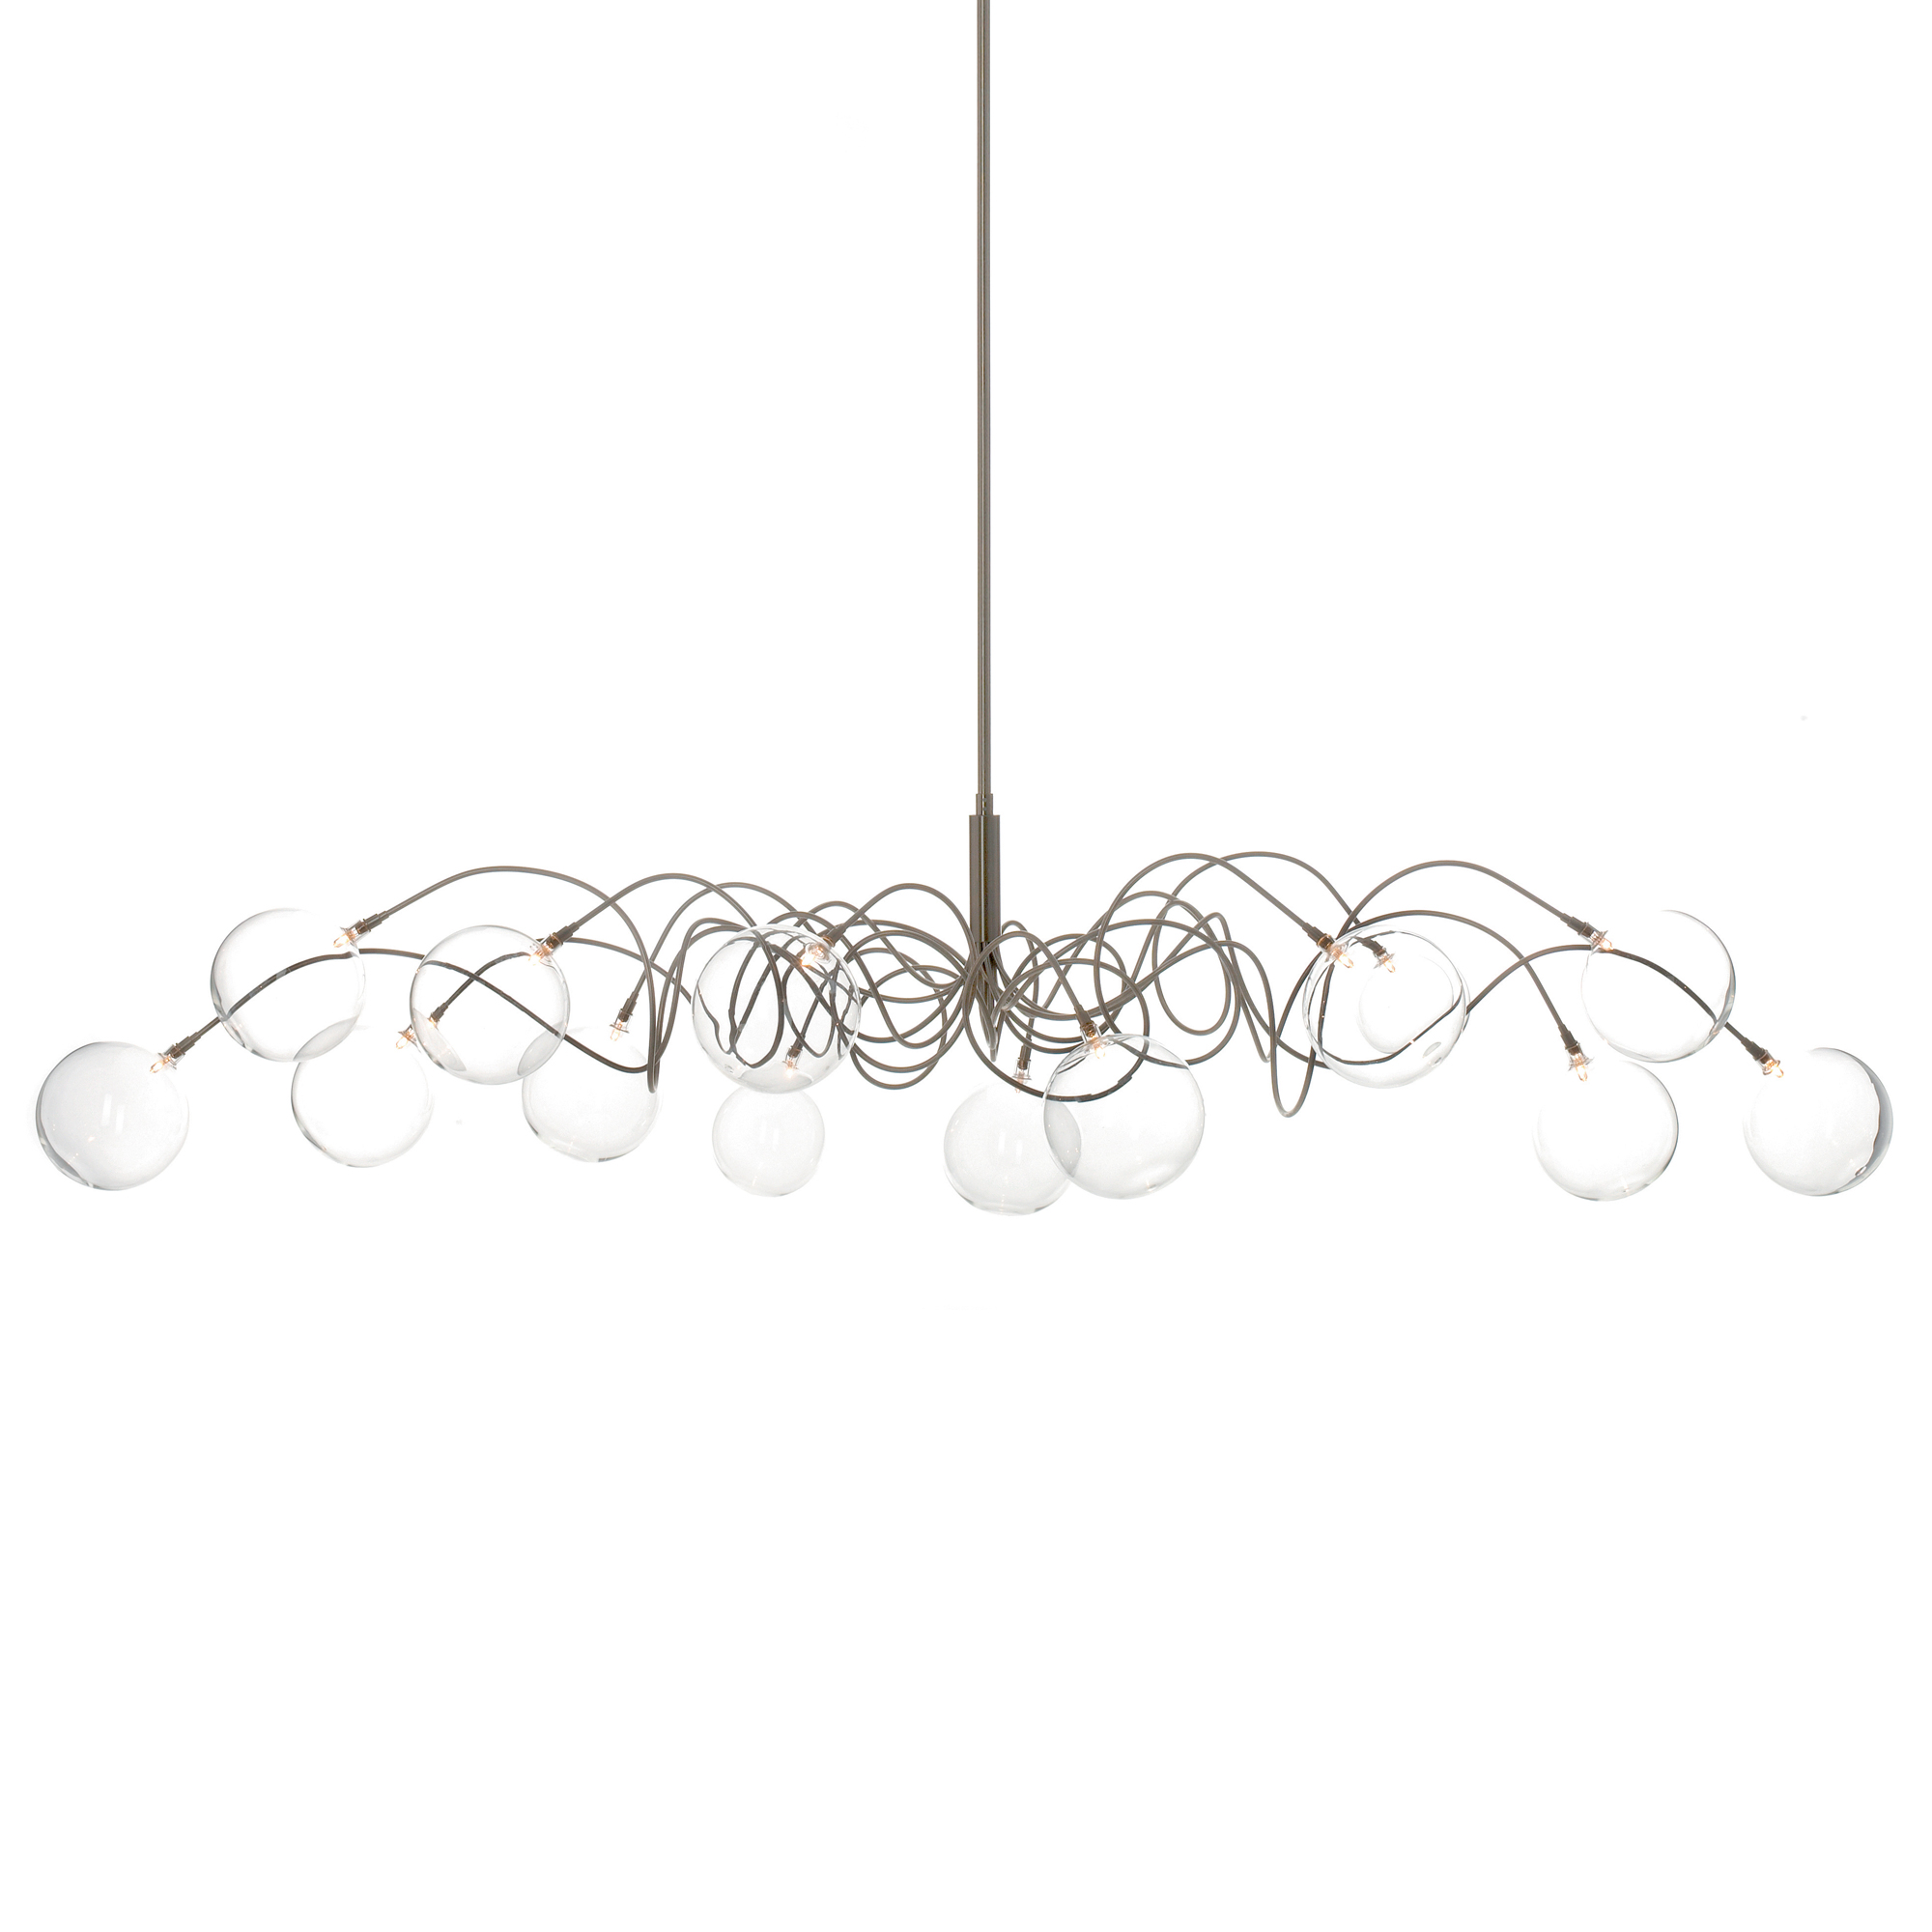 Bubbles Oval Pendant By Harco Loor Ov Hl 14 L